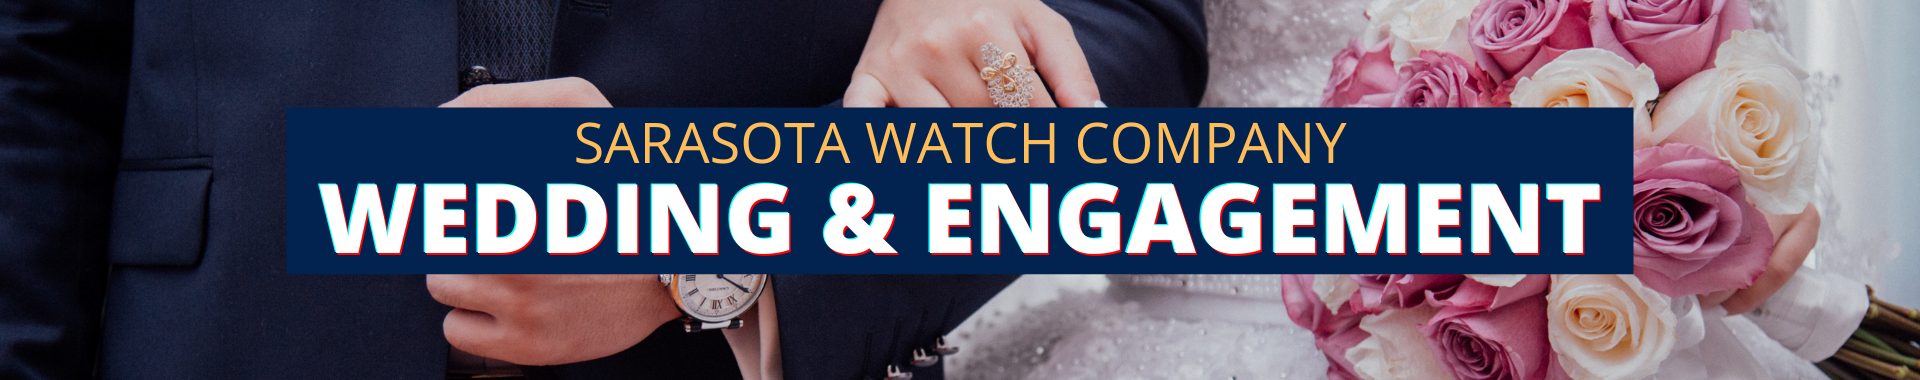 WEDDING AND ENGAGEMENT RINGS SARASOTA WATCH COMPANY